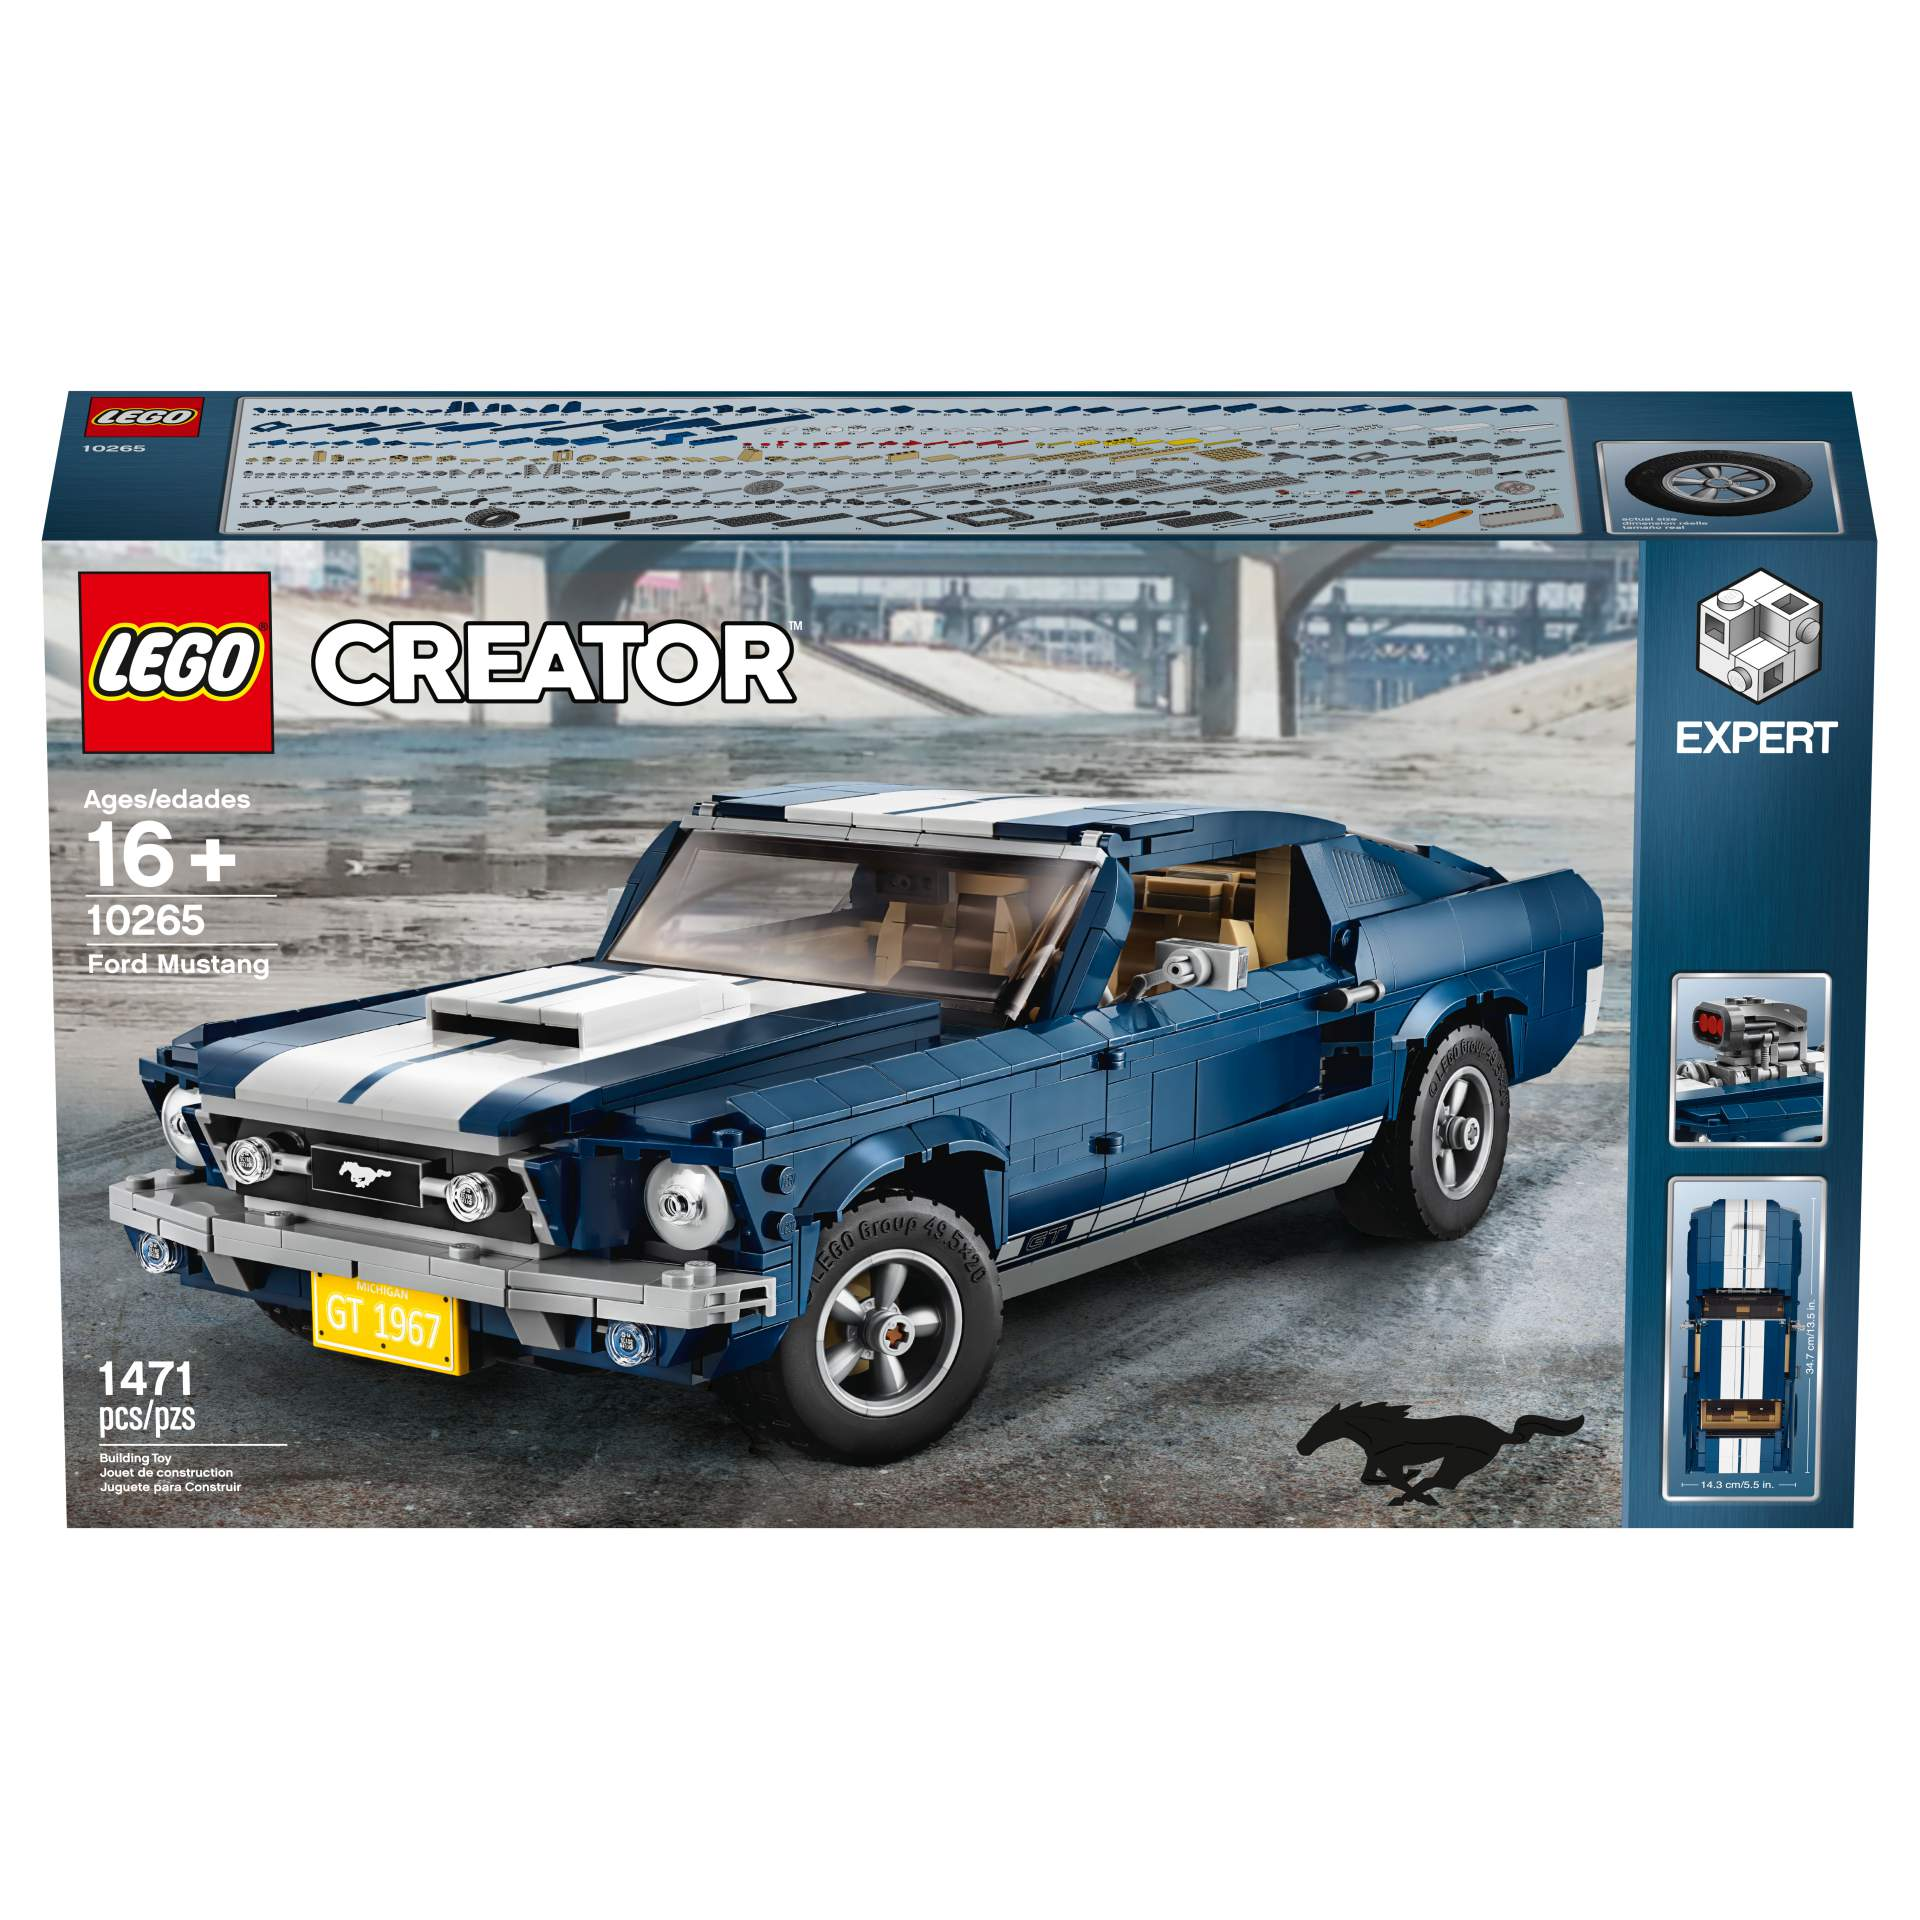 Ford Mustang GT 1967 Lego Creator Set (20)